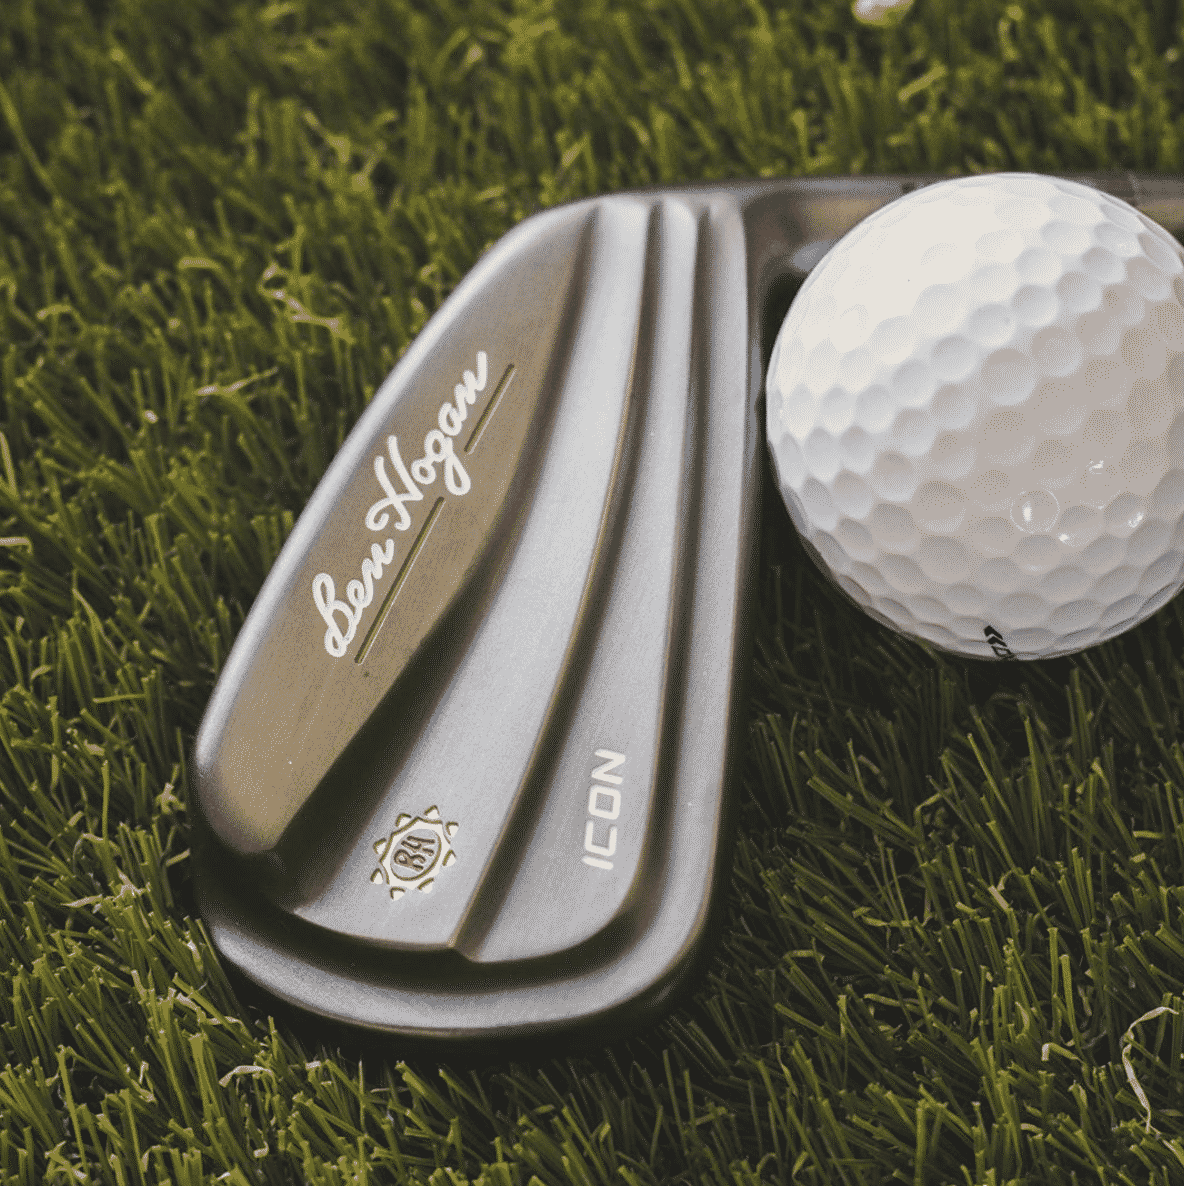 Icon iron and ball on the fairway